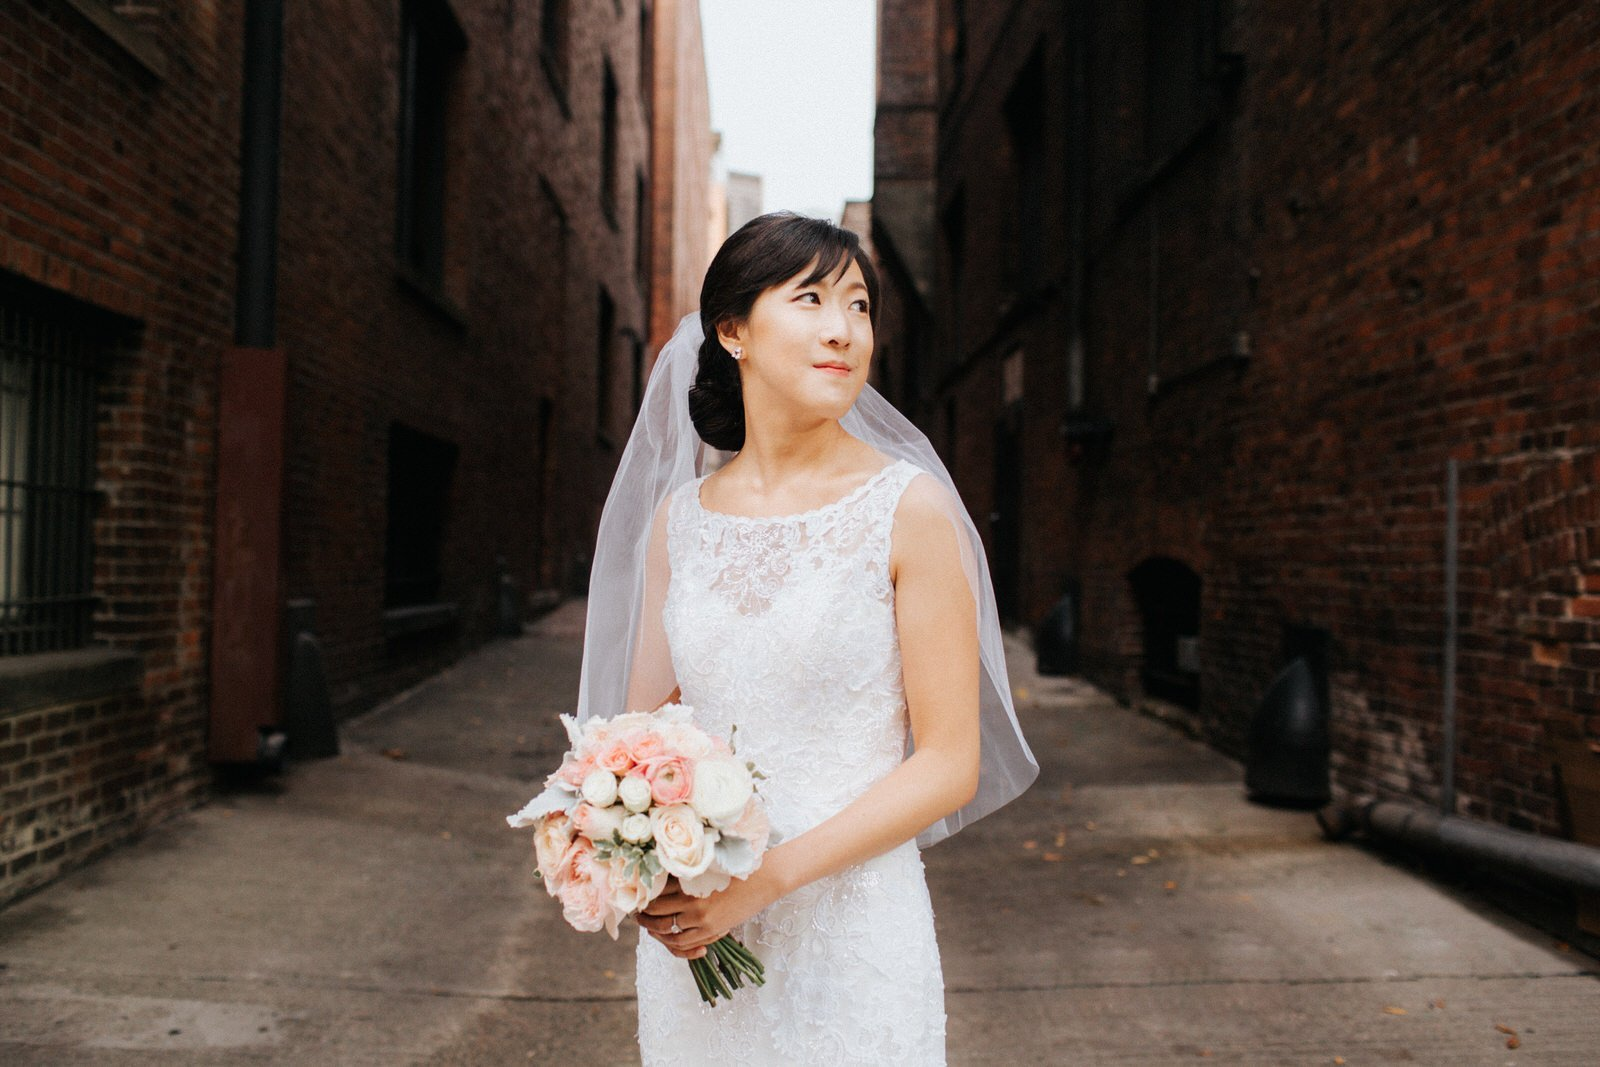 The gorgeous bride poses in pioneer square in a veil